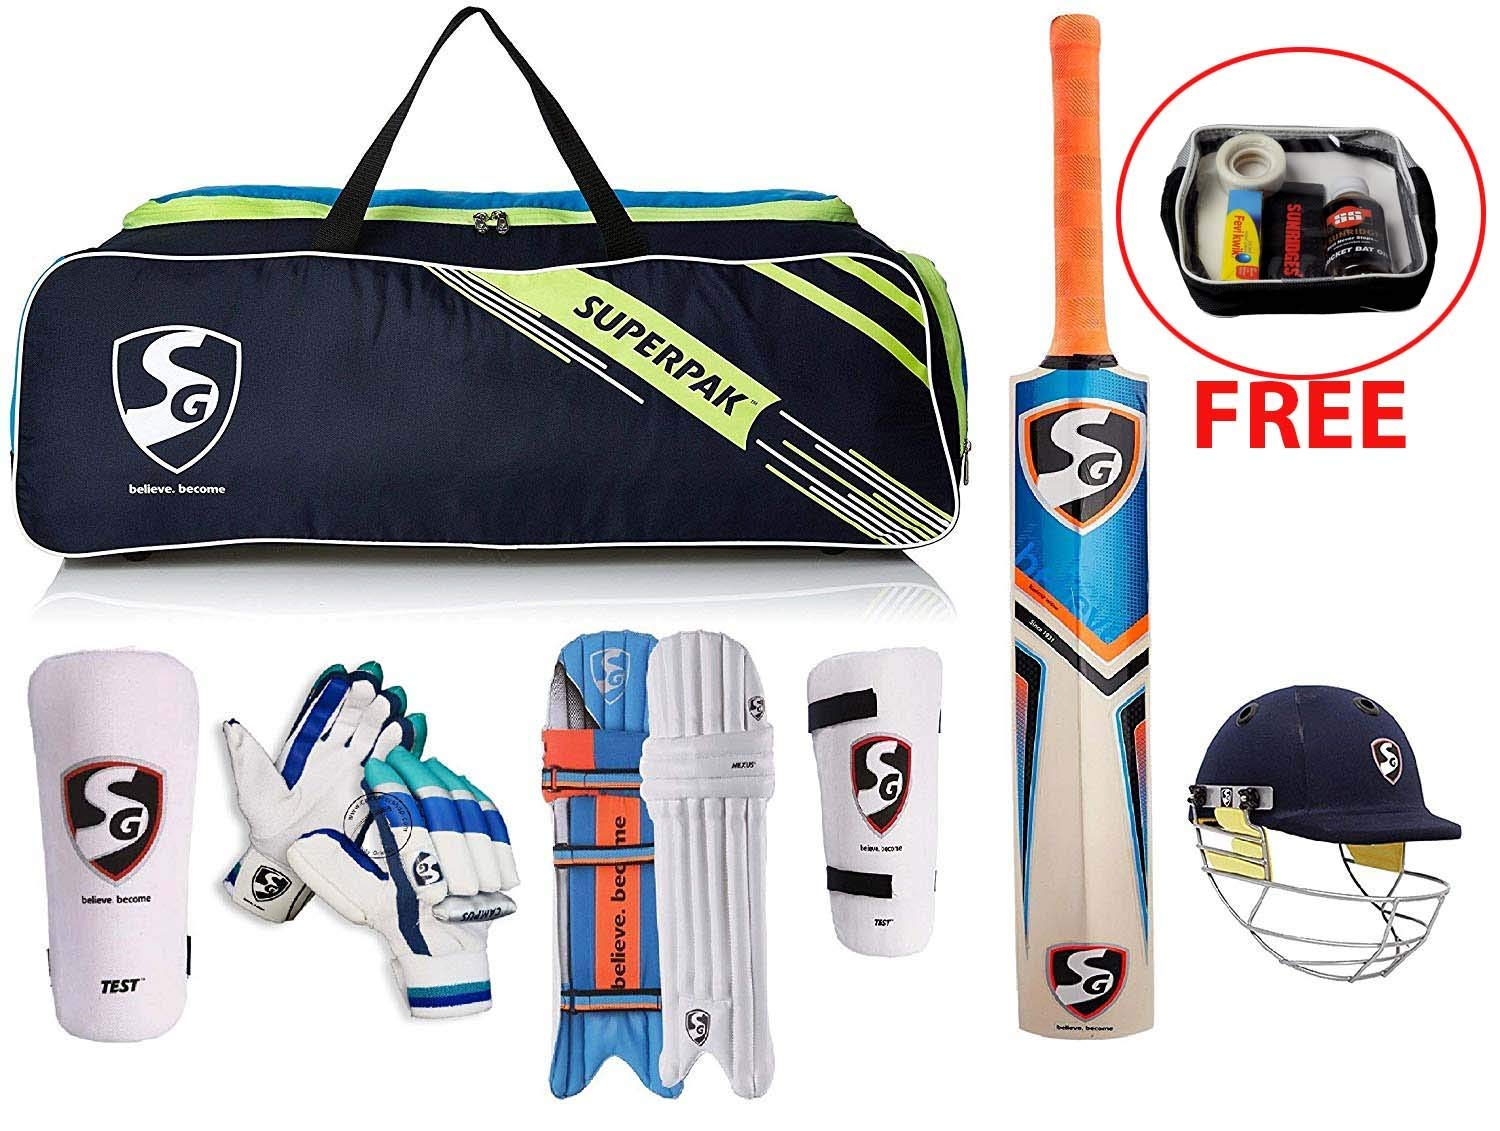 SG Original Brand Premium Cricket Kit with Cricket Bat (with Cover) + Legguard + Batting Gloves + Kitbag + Thigh Guard + Arm Guard + Abdo Guard & Get SS Bat Care Kit Free.